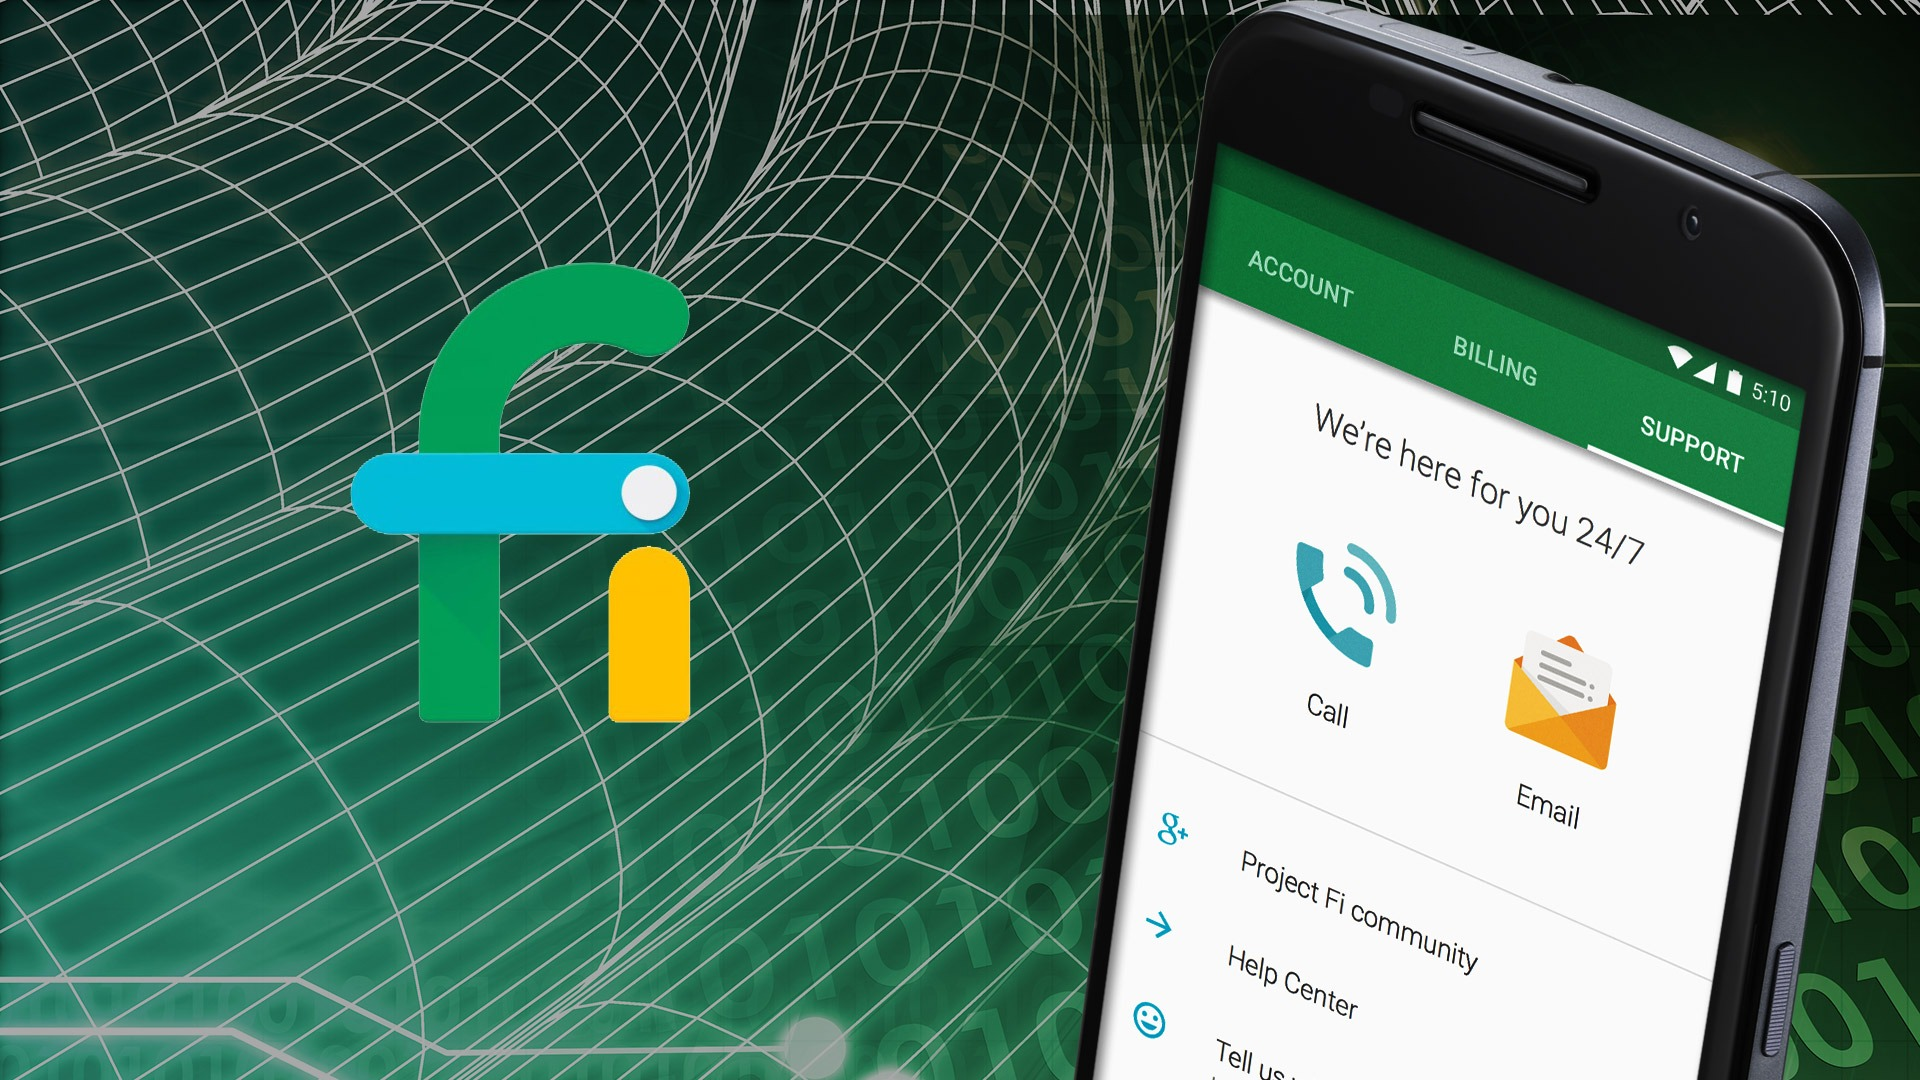 Google Fi: Here Are The Plans, Compatibility And Other Details